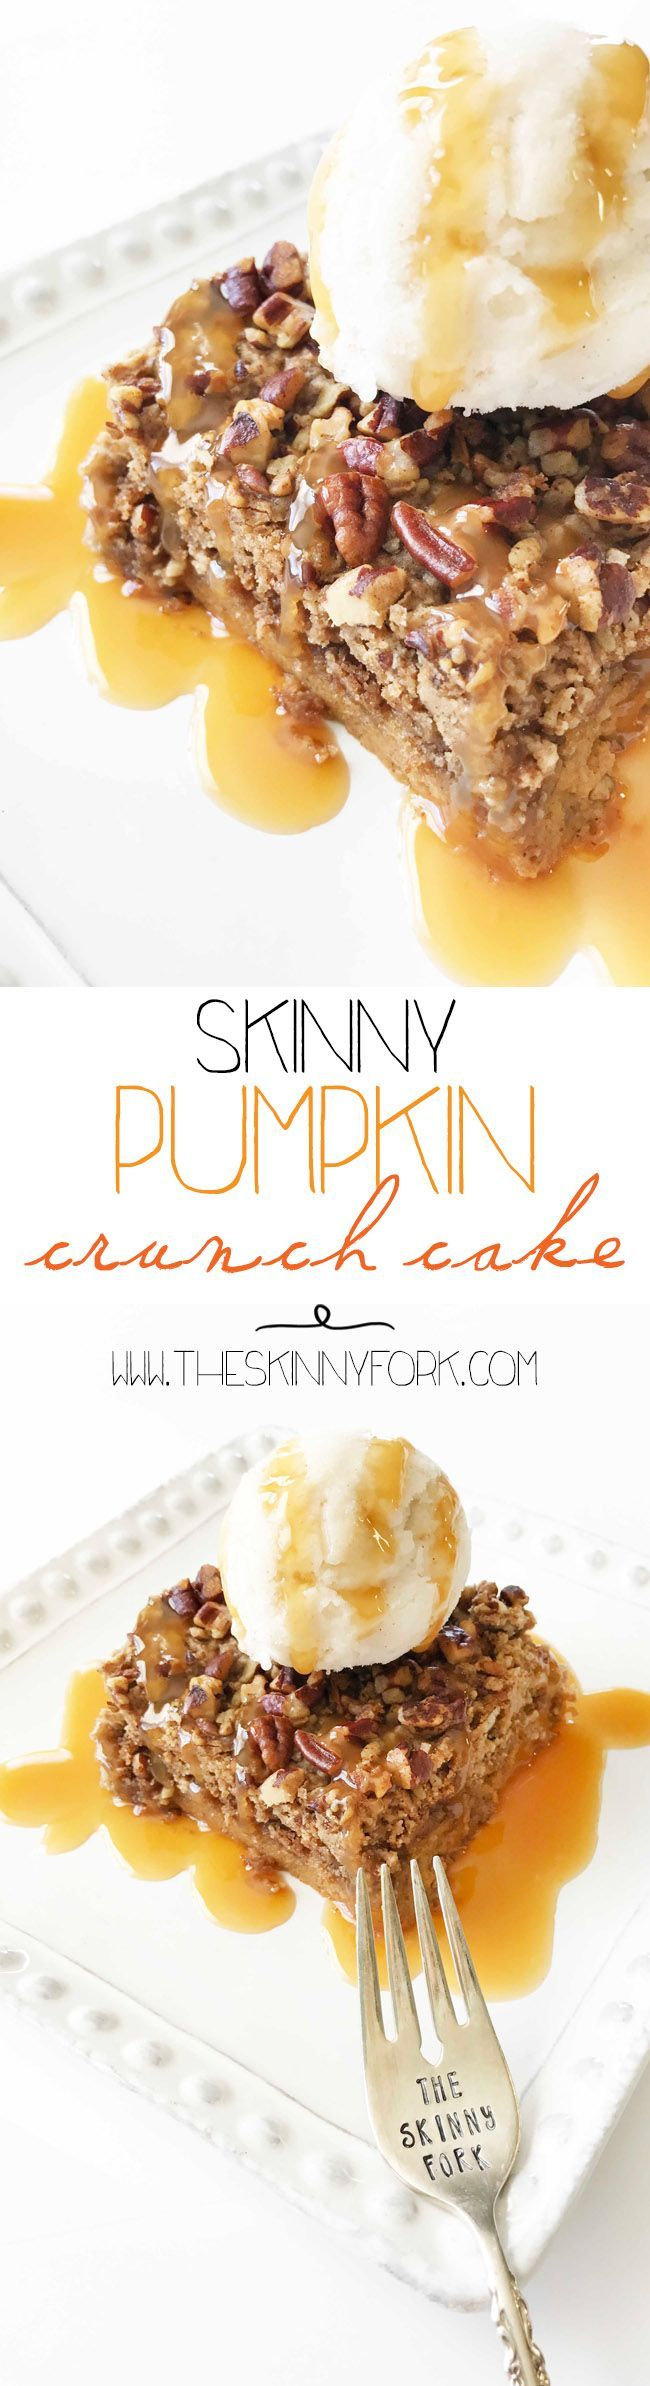 This Skinny Pumpkin Crunch Cake is gonna knock your socks off! TheSkinnyFork | Skinny & Healthy Recipes